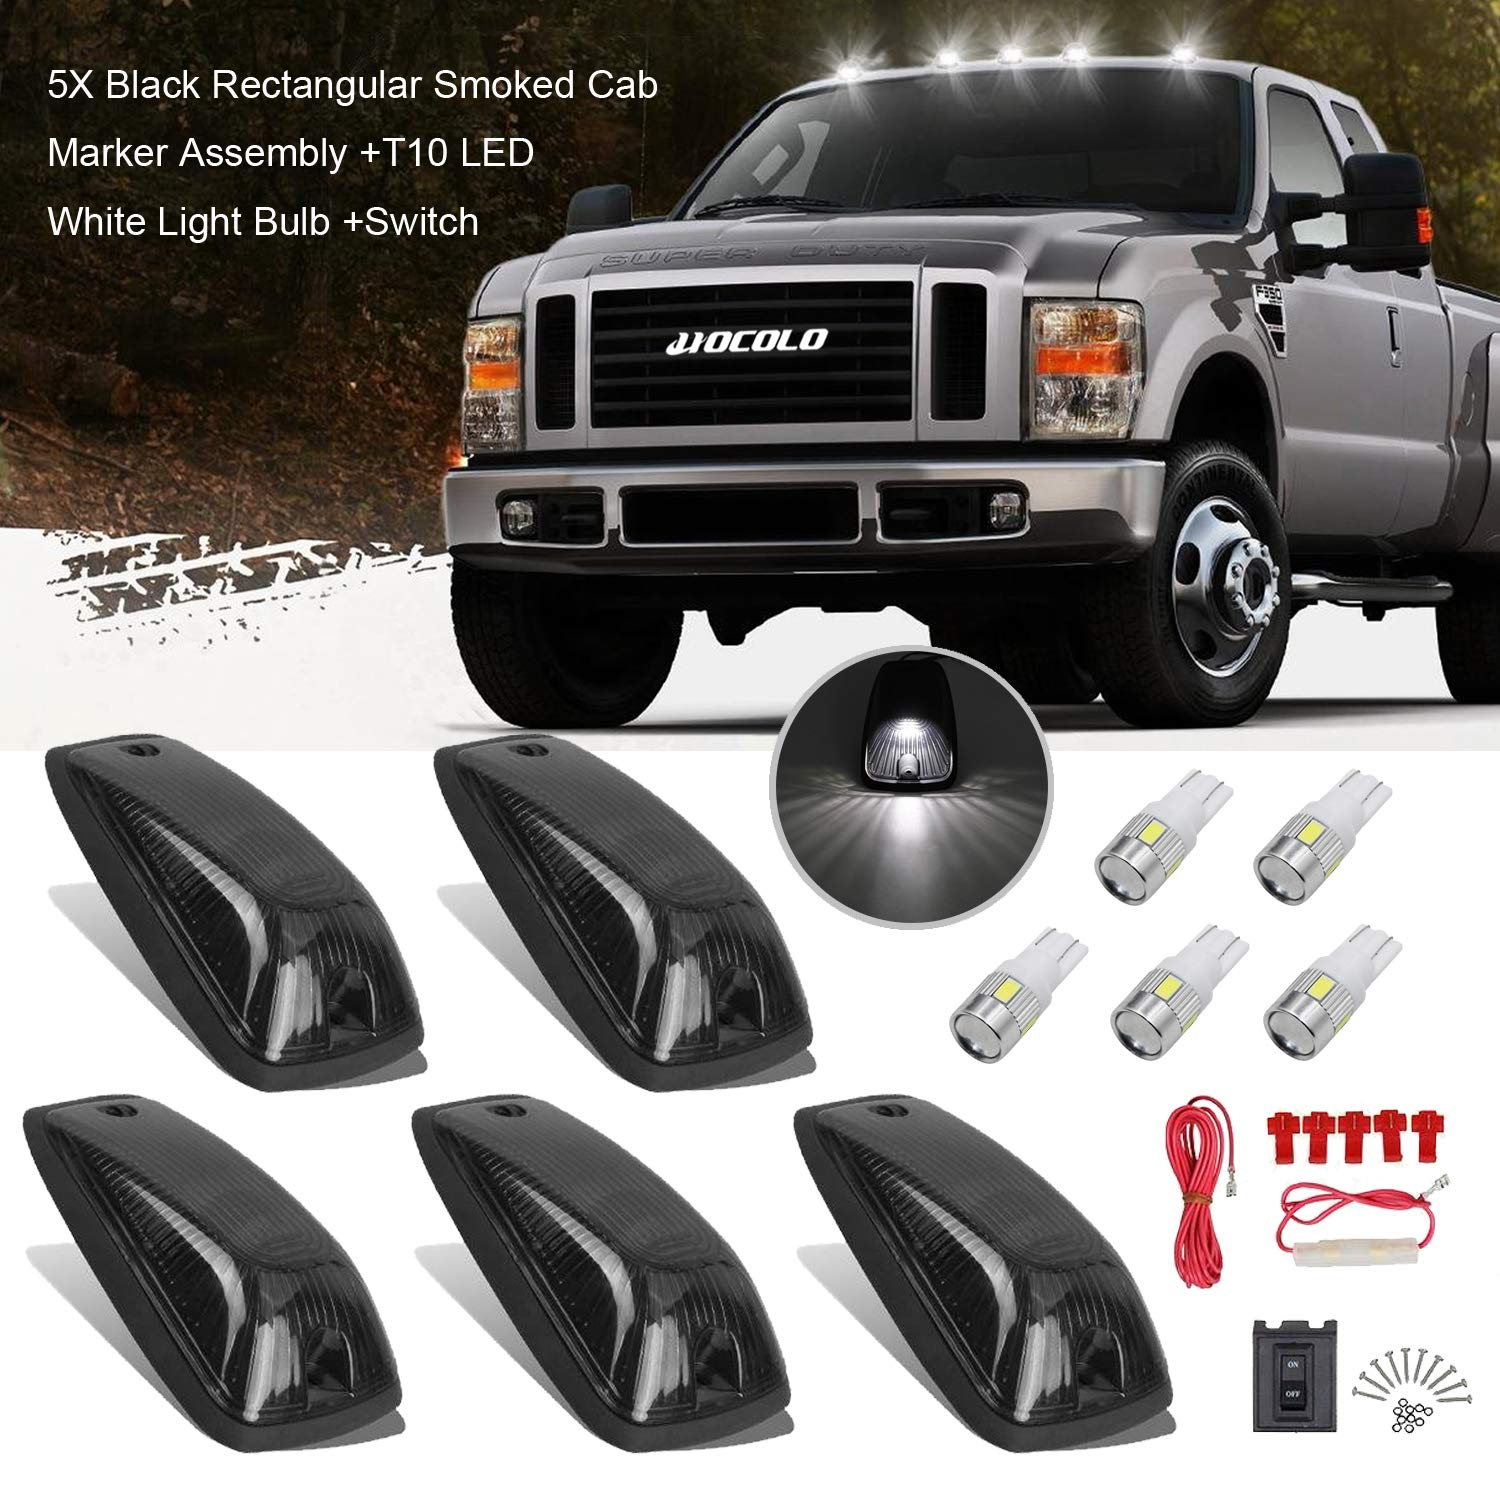 HOCOLO Roof Running Light Cover Base Switch for 1988-2002 GMC Chevy C1500 C2500 C3500 K1500 K2500 K3500 Pickup Rectangular Smoked Cab Marker Assembly + T10 LED, T10 B 5 Set Black Smoked Cab Maker Blue Light Assembly Blue T10 LED Light Bulbs Replacement